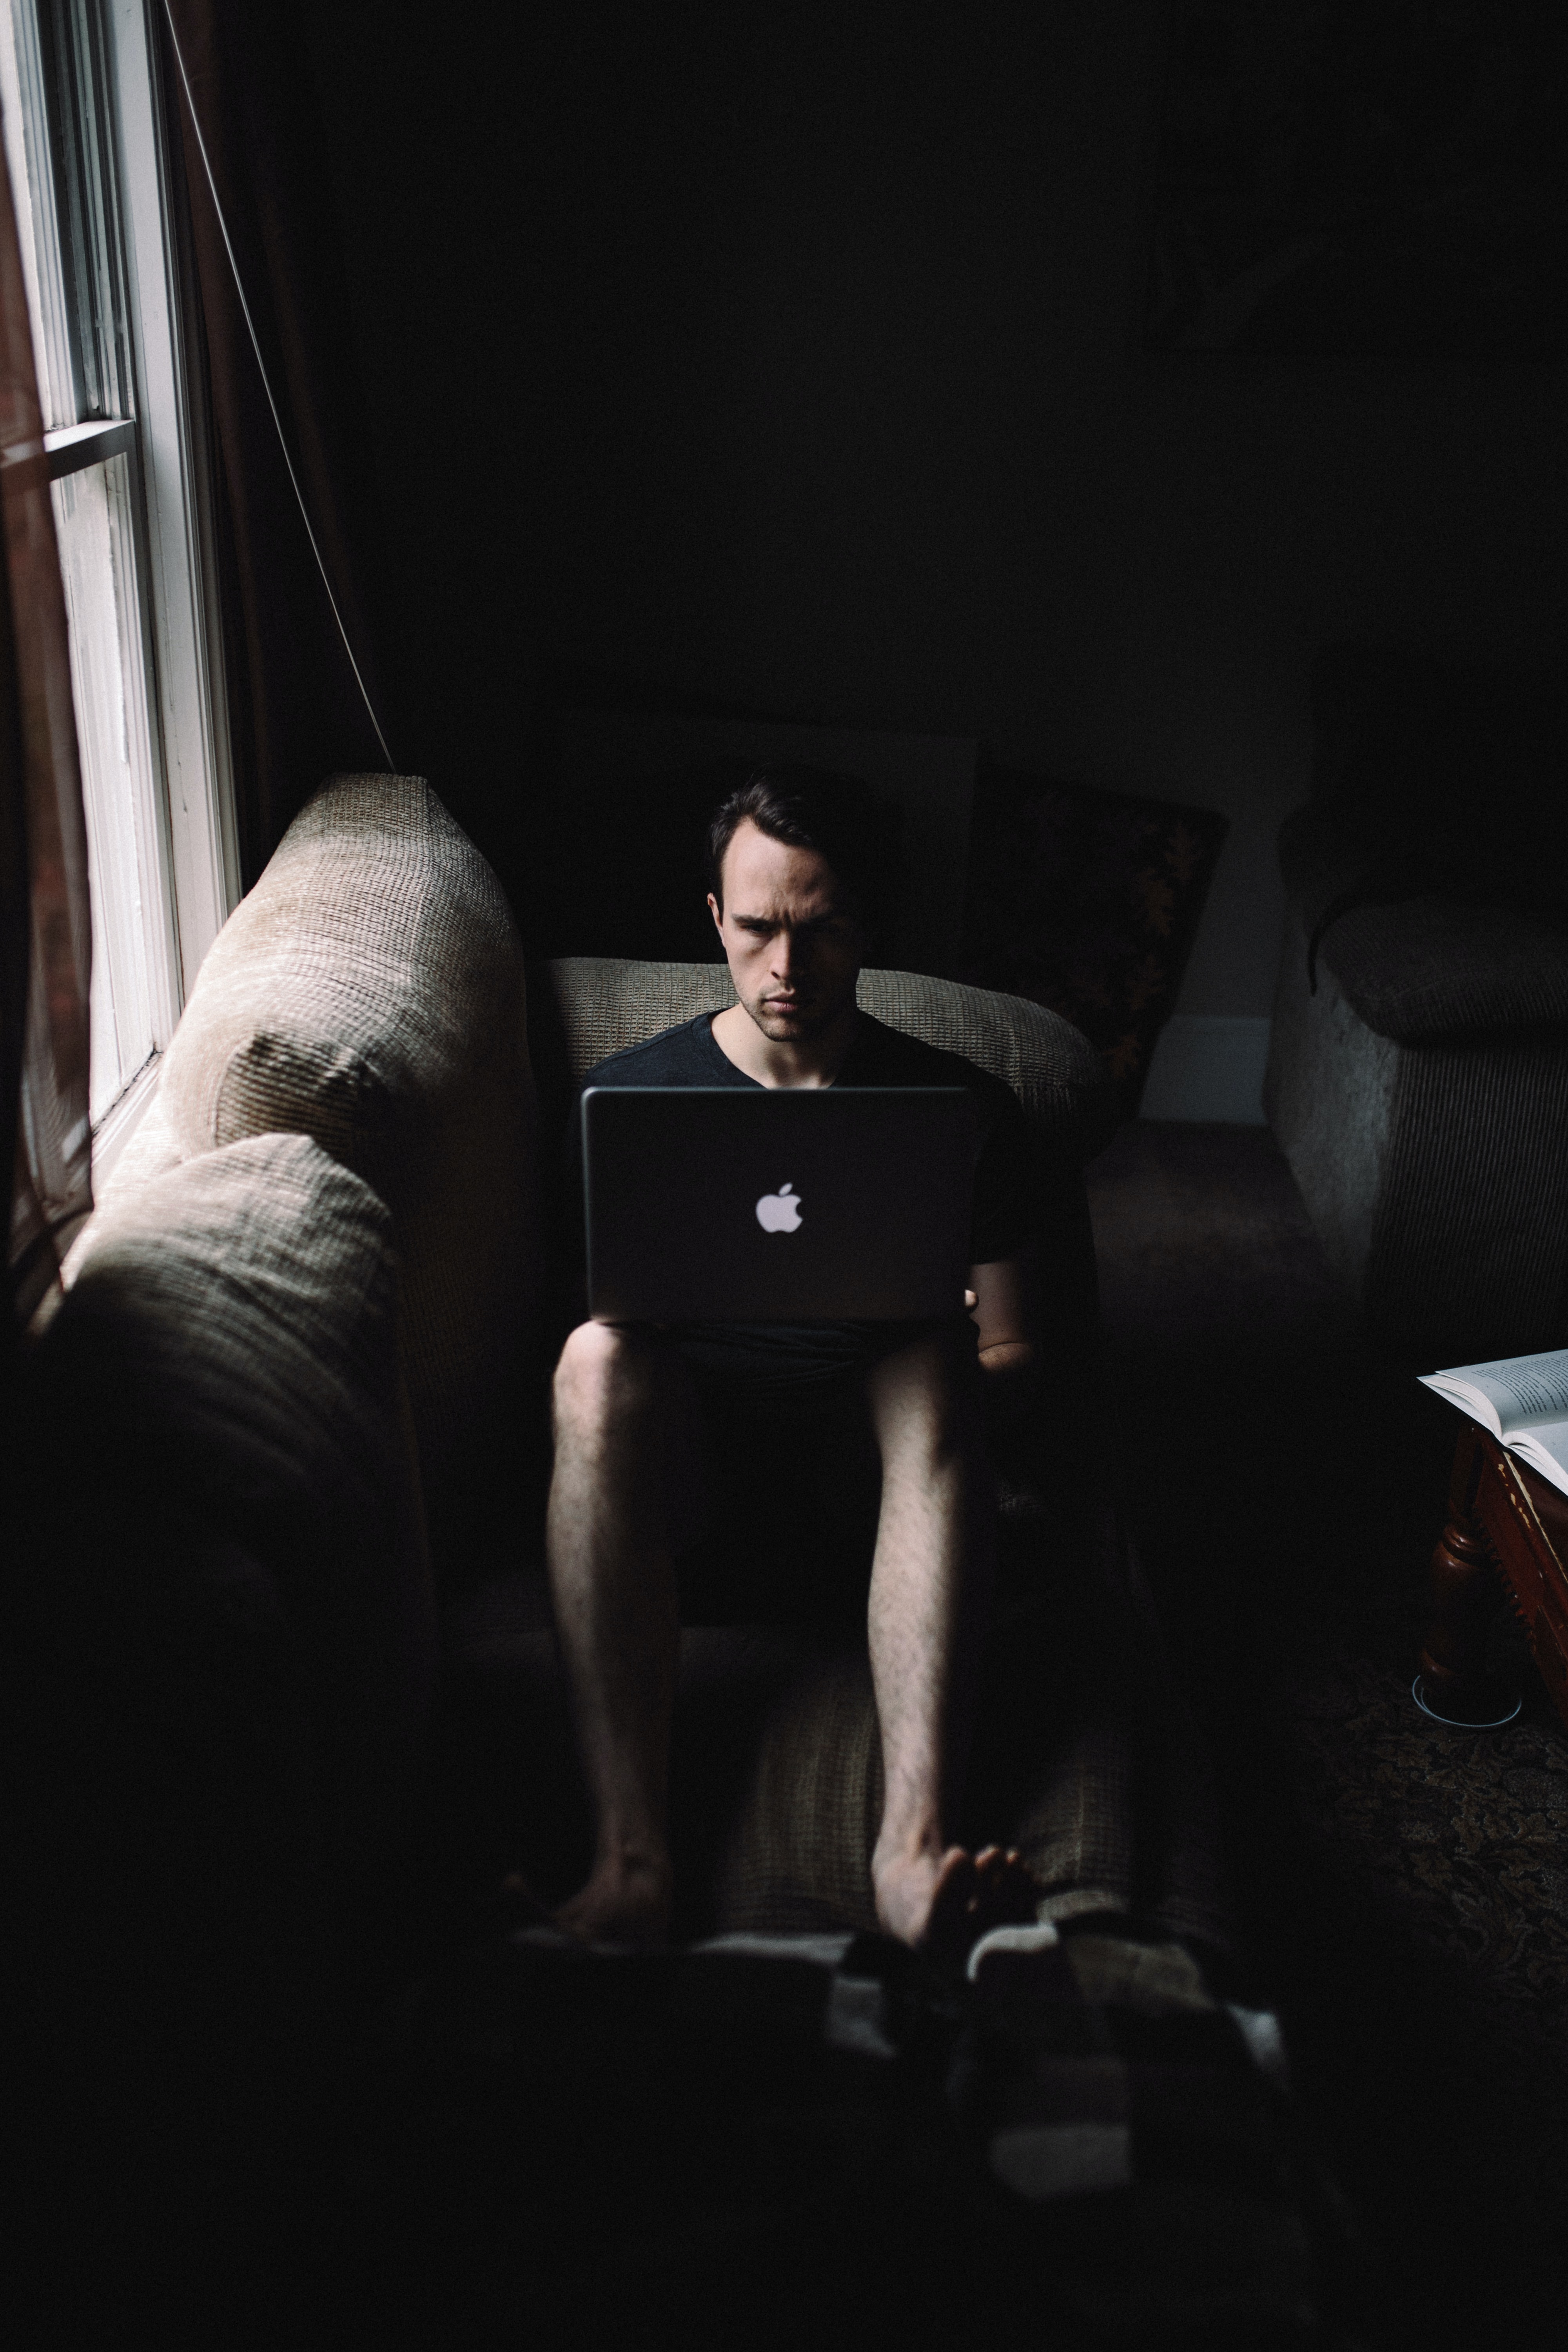 man seating on sofa using MacBook beside window